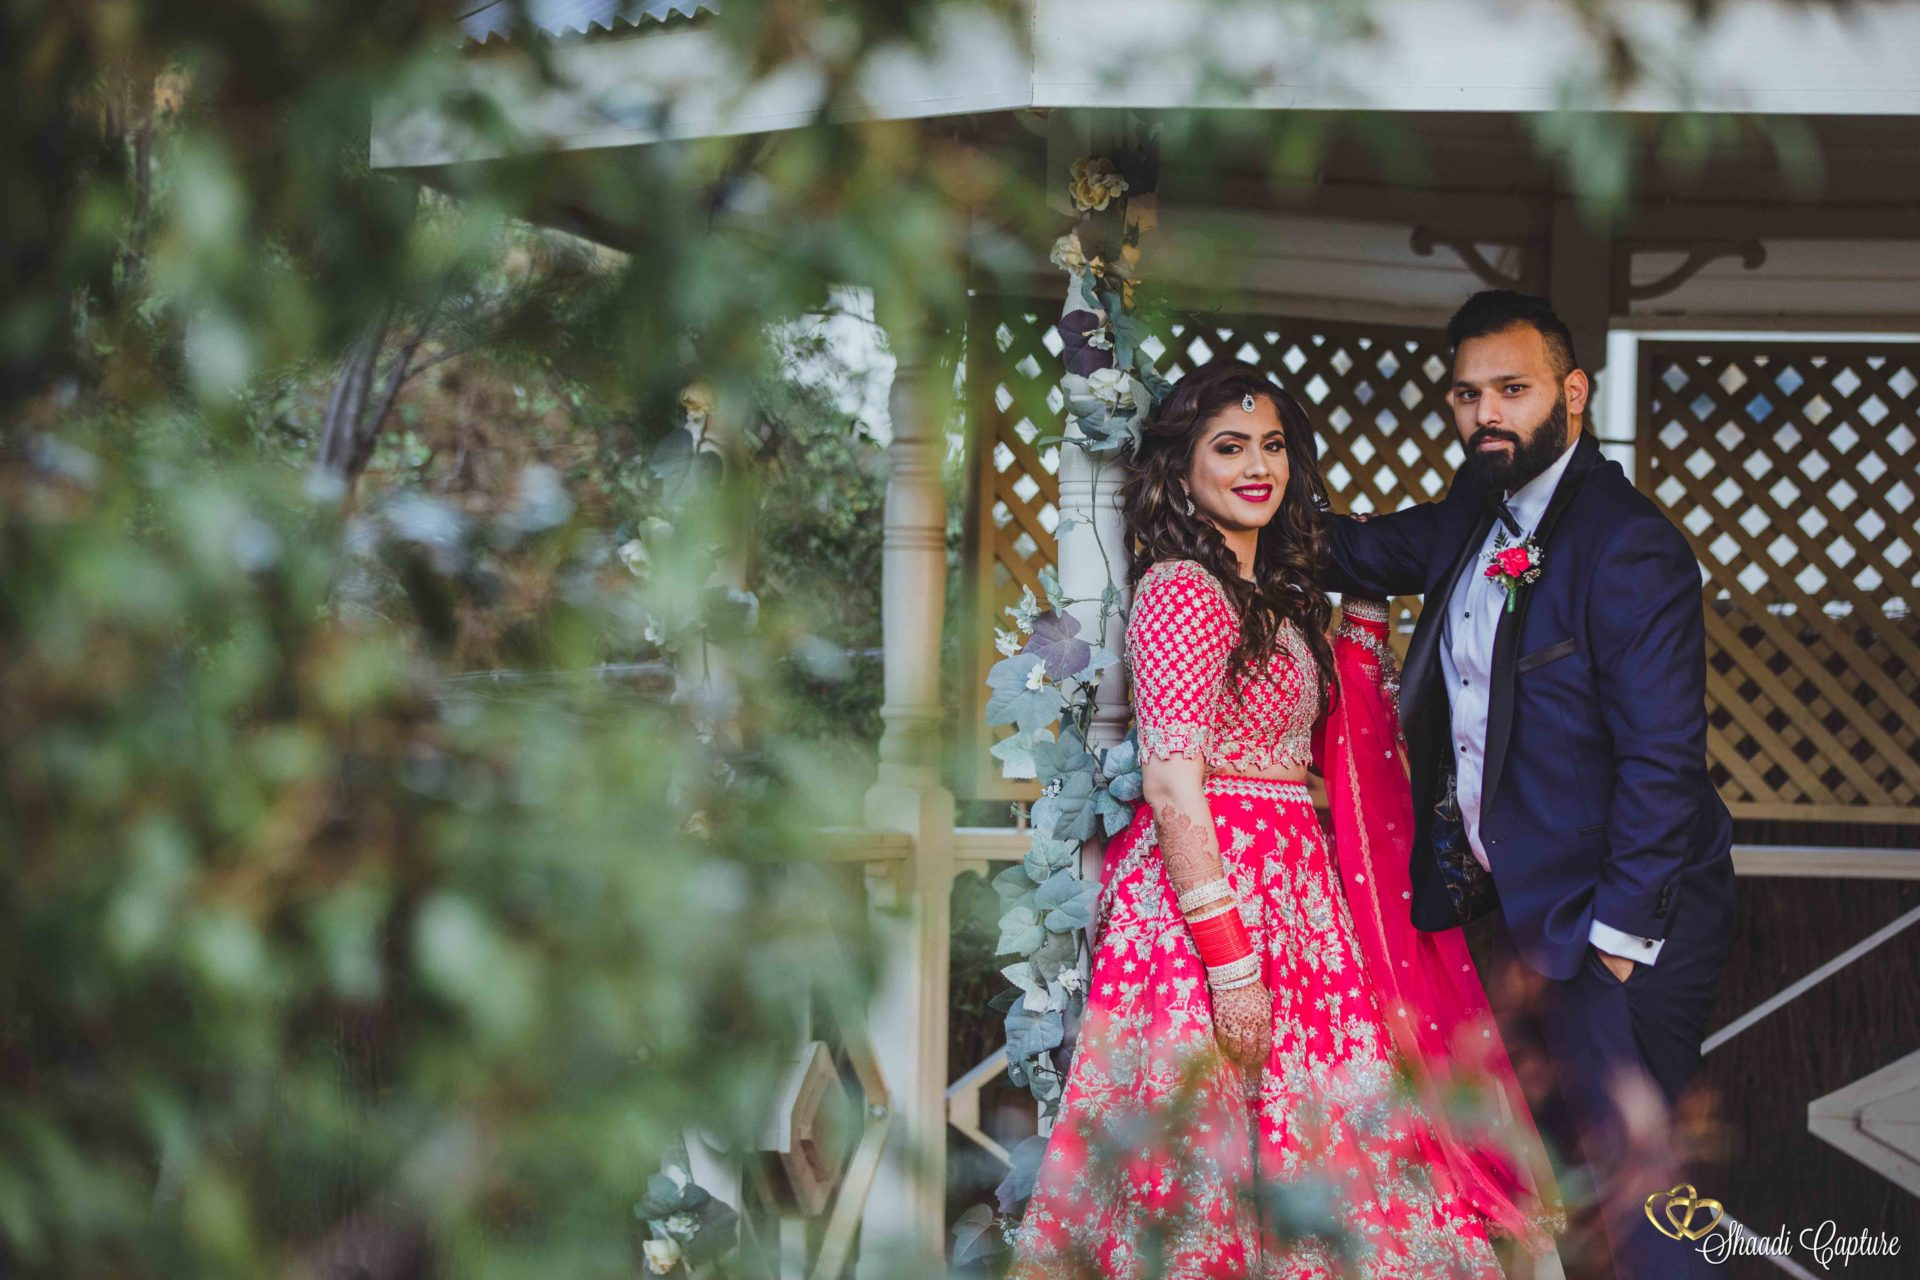 Shaadi Capture | Wedding Photography Melbourne